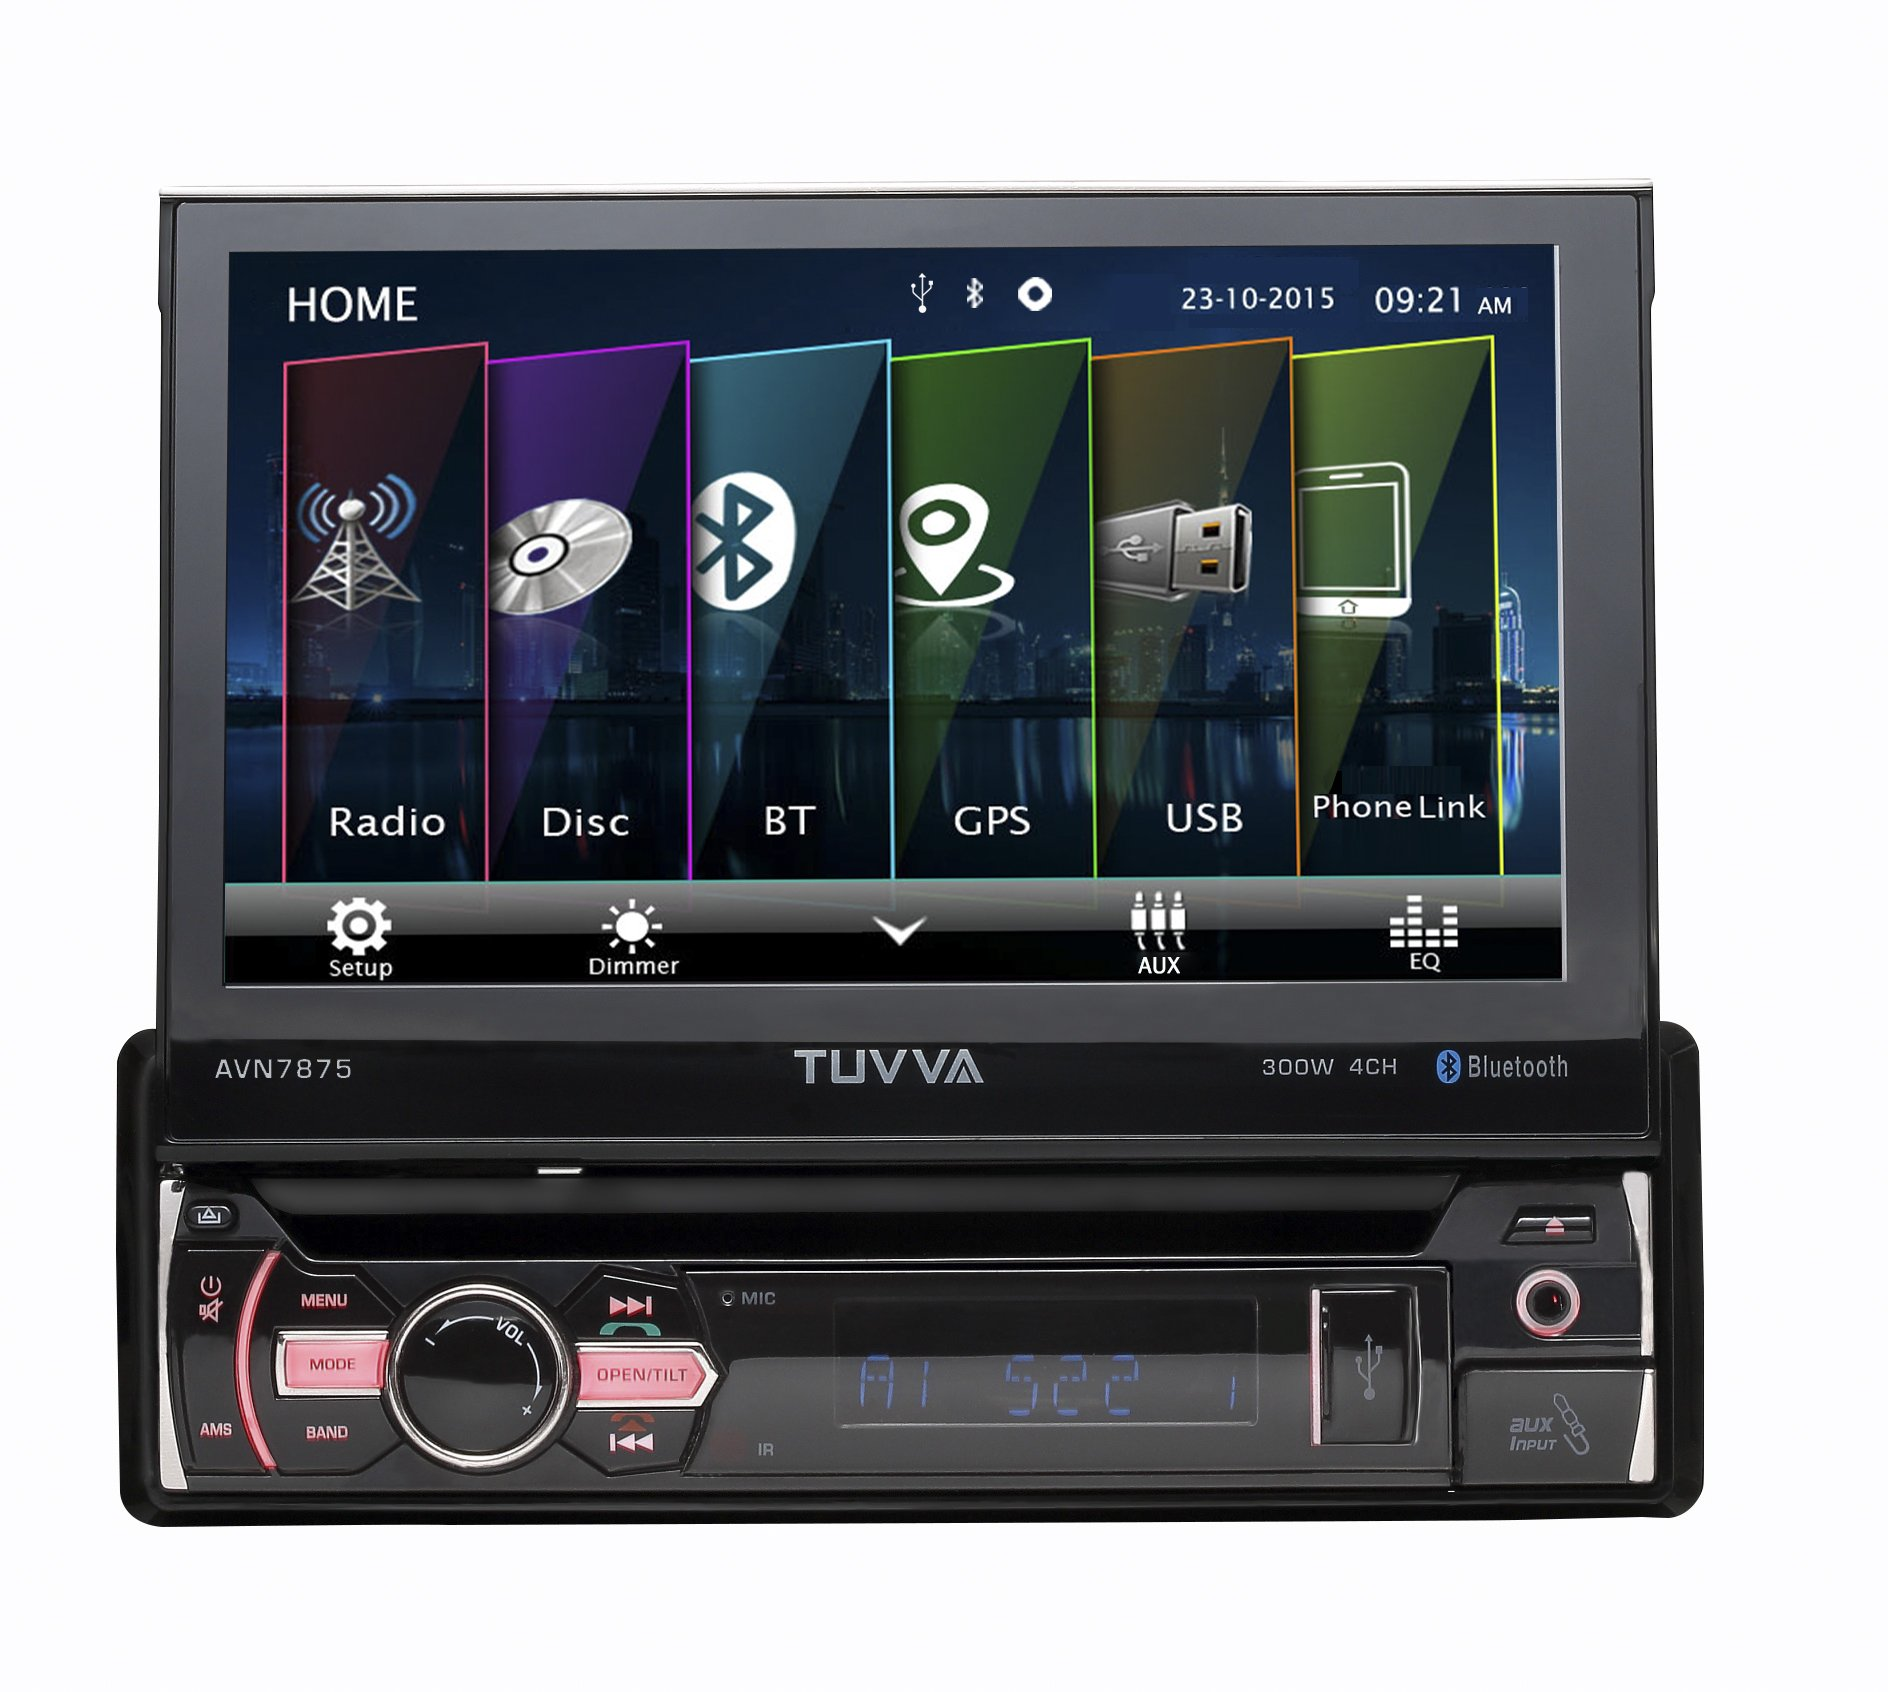 """TUVVA 7"""" Sinle DIN Car Stereo Touch Screen GPS Navigation, DVD/ CD/ USB/ AUX-IN/ PhoneLink/ RDS/ Remote Control product image"""